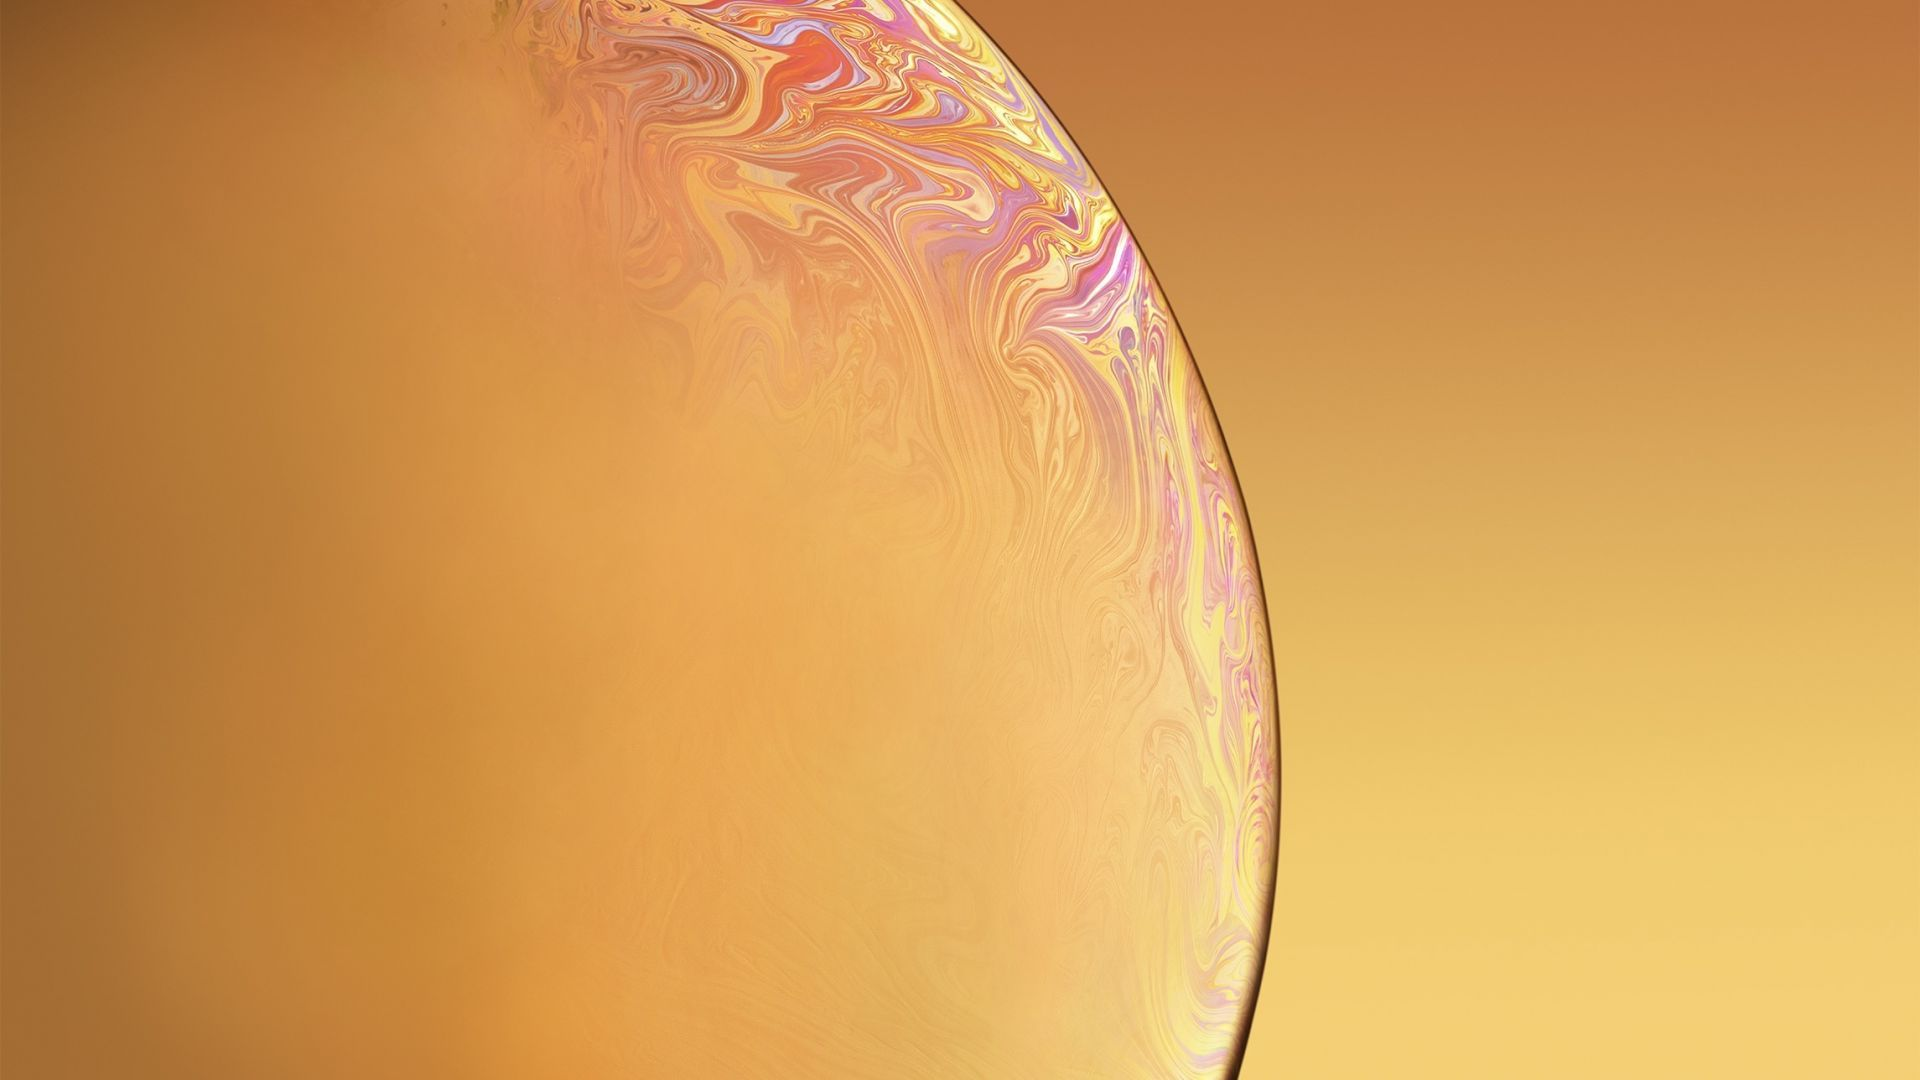 Earth Planet Bubble Yellow Red Iphone Xr Ios 12 Stock Hd Wallpaper Earth Yellow Wallpaper Iphone